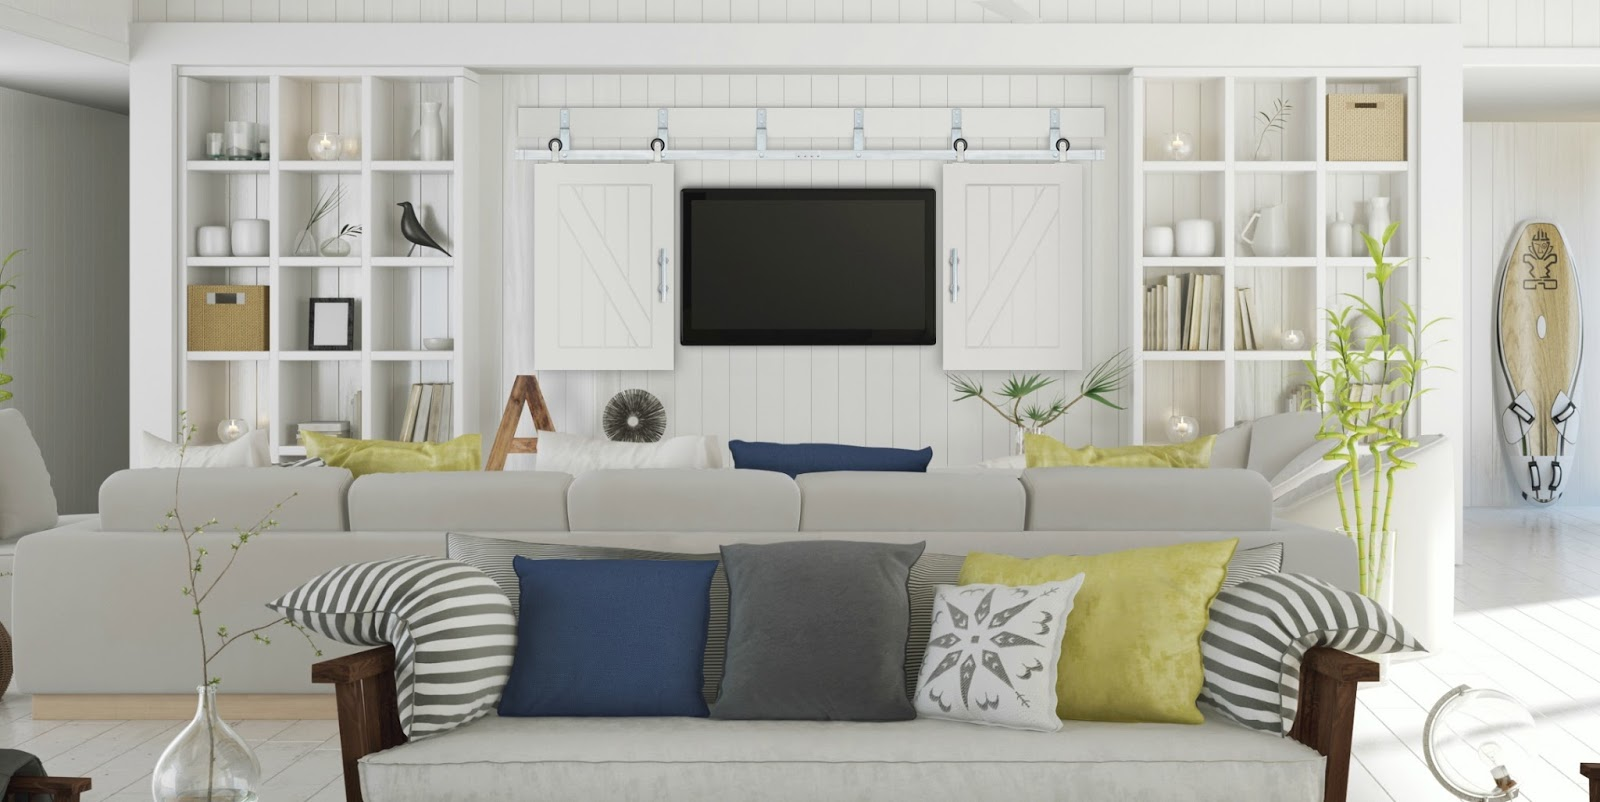 image result for Pacific Entries sliding TV barn doors in white family room